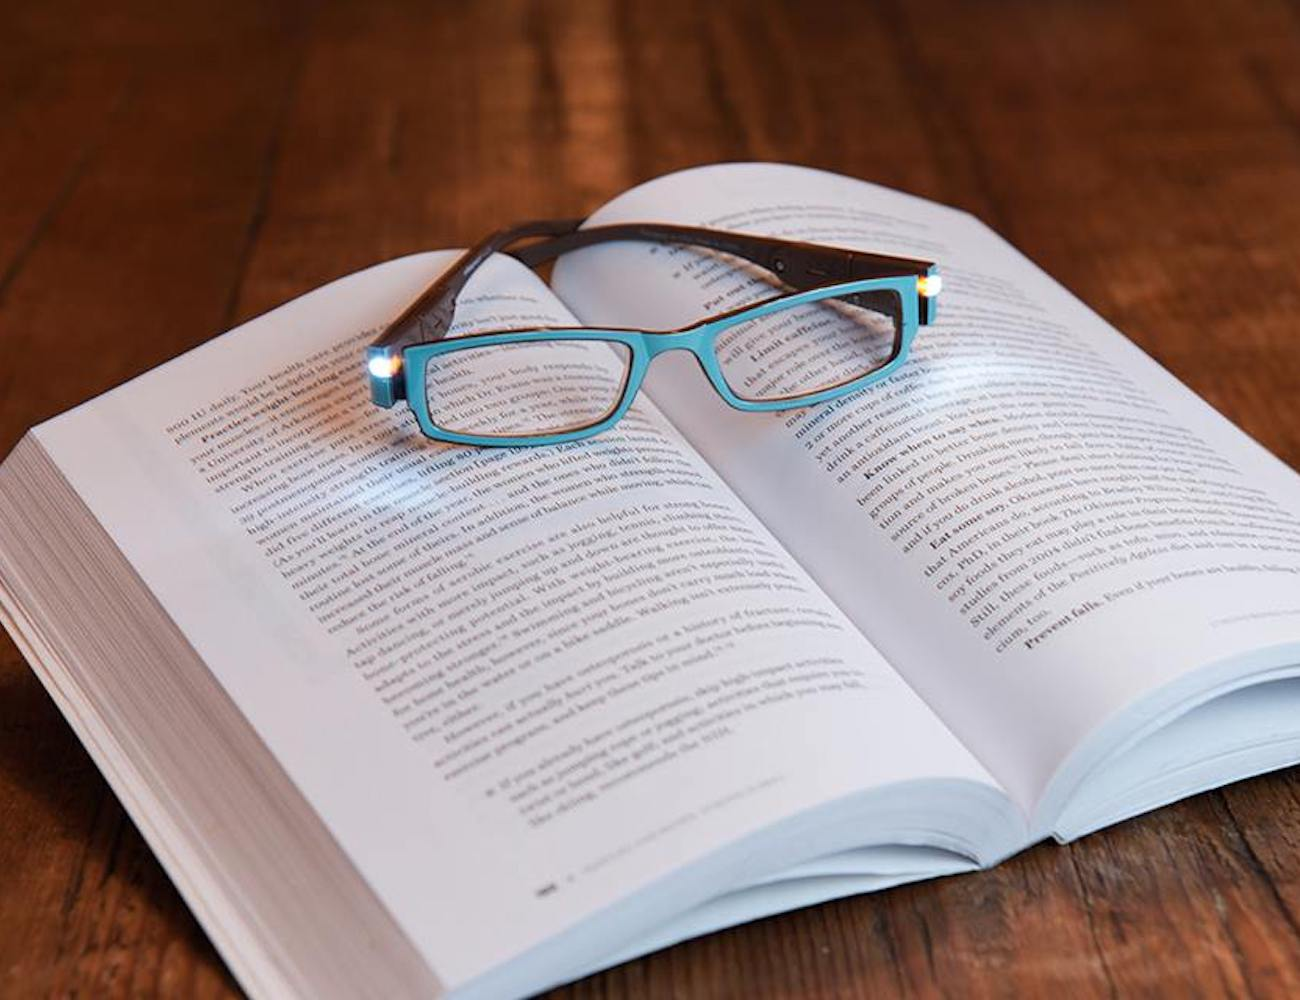 NiteSpecs LED Light Reading Glasses let you see with precision